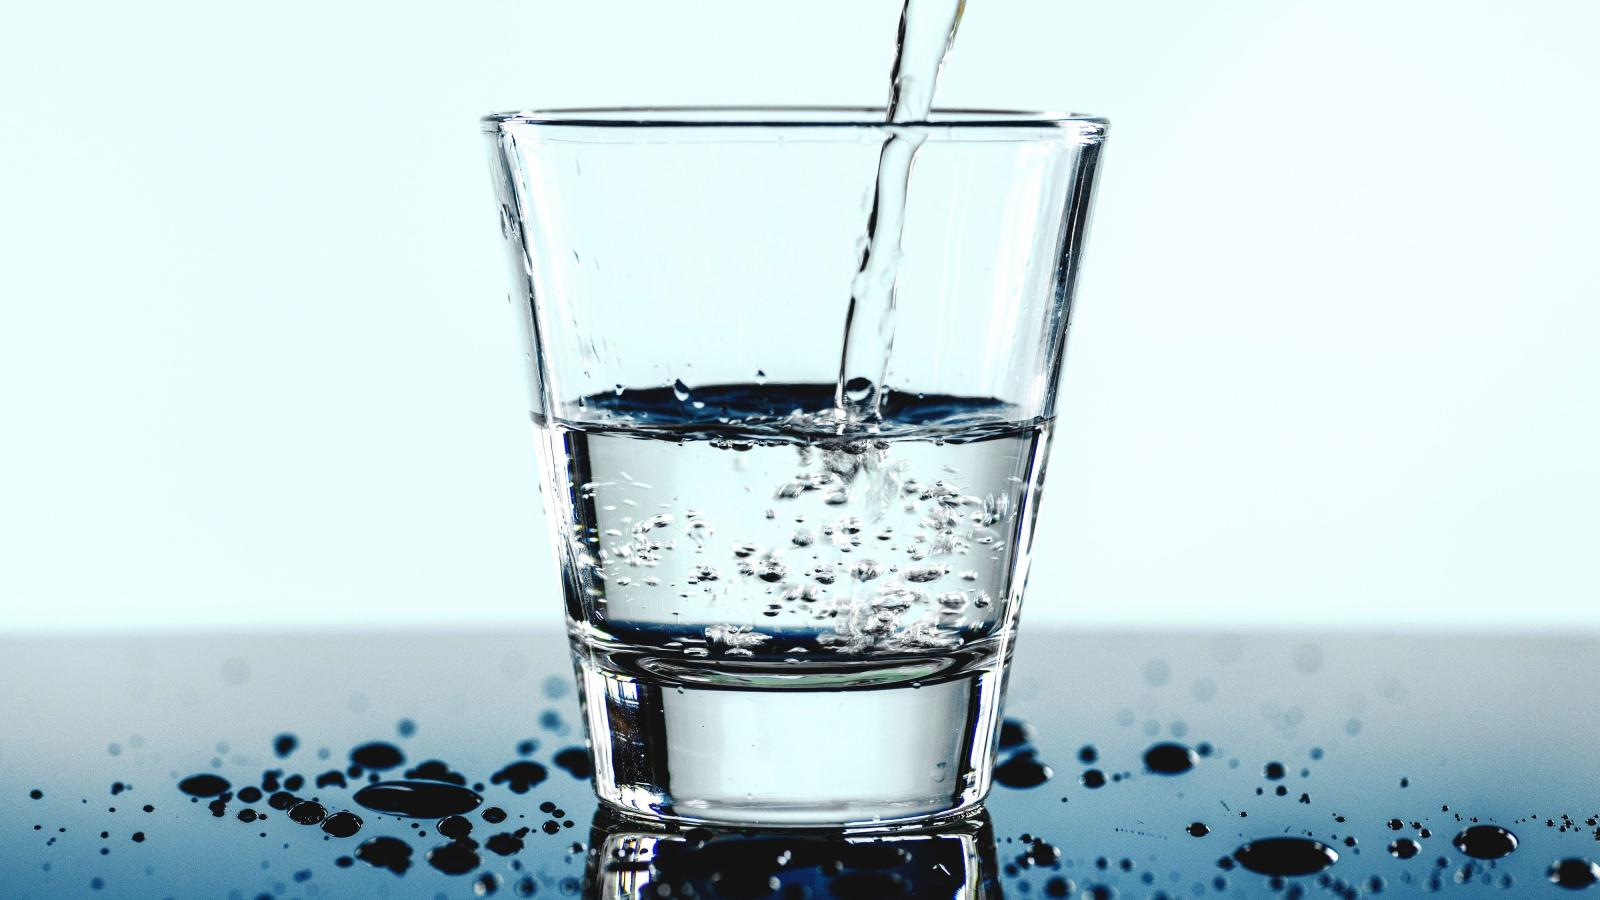 7 Tips to Choose Home Water Filters